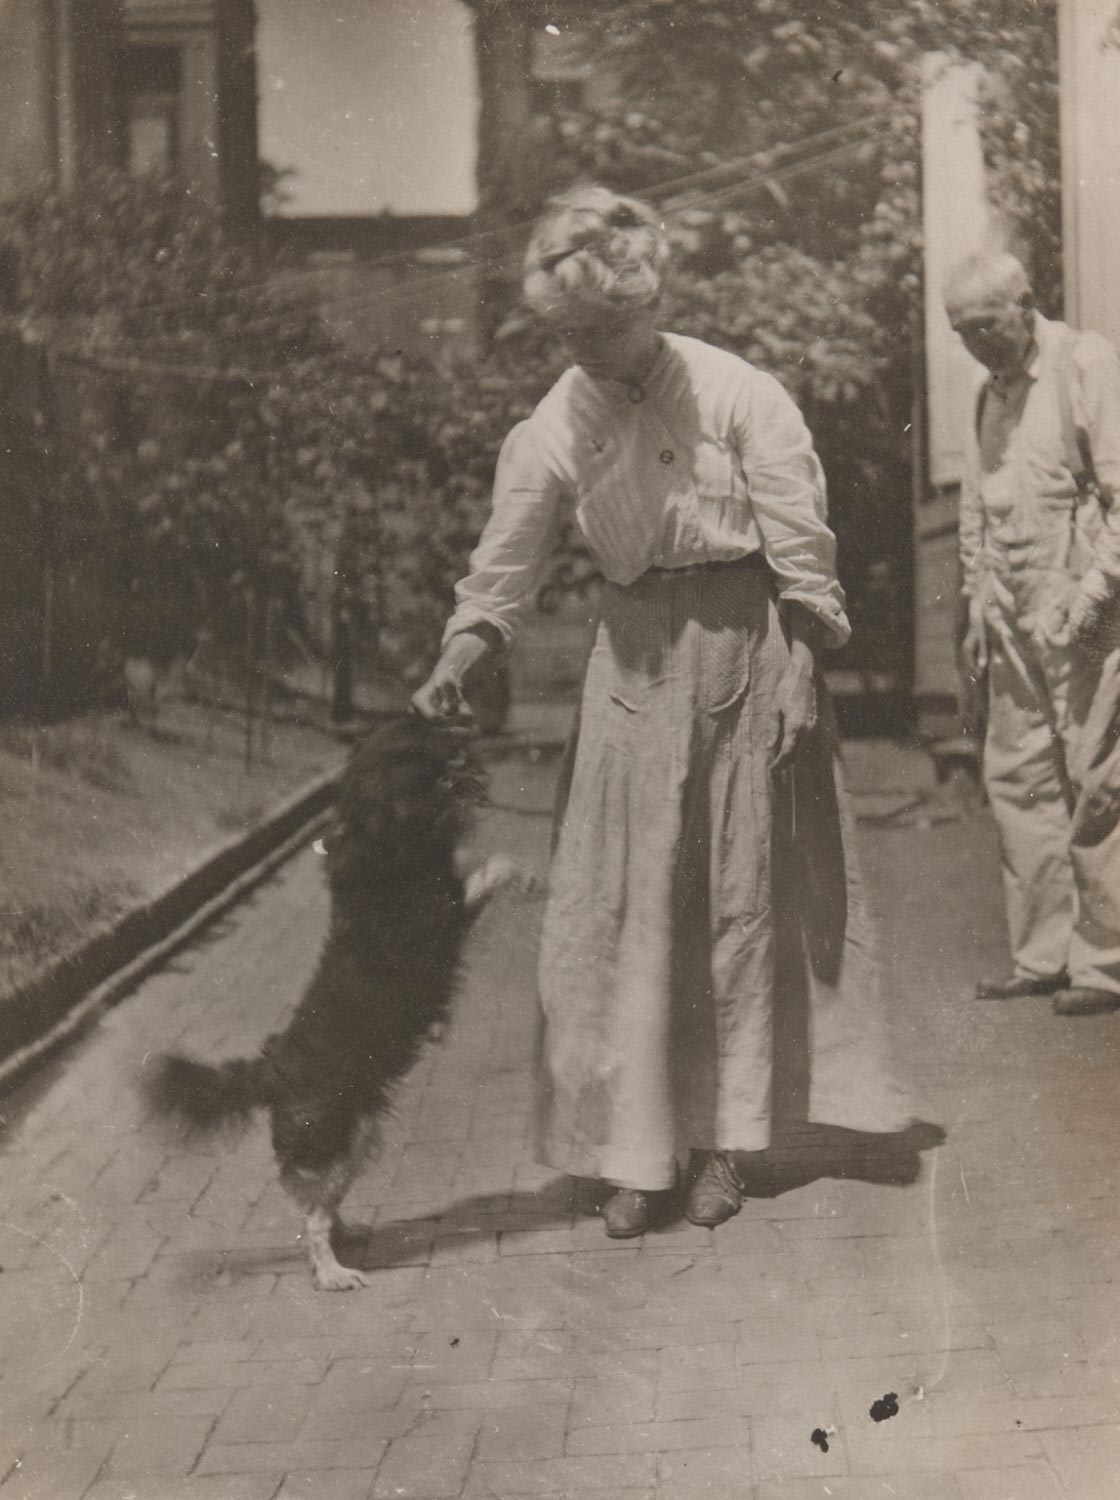 Thomas Eakins and Susan Macdowell Eakins with a Dog, in the Backyard, Mount Vernon Street